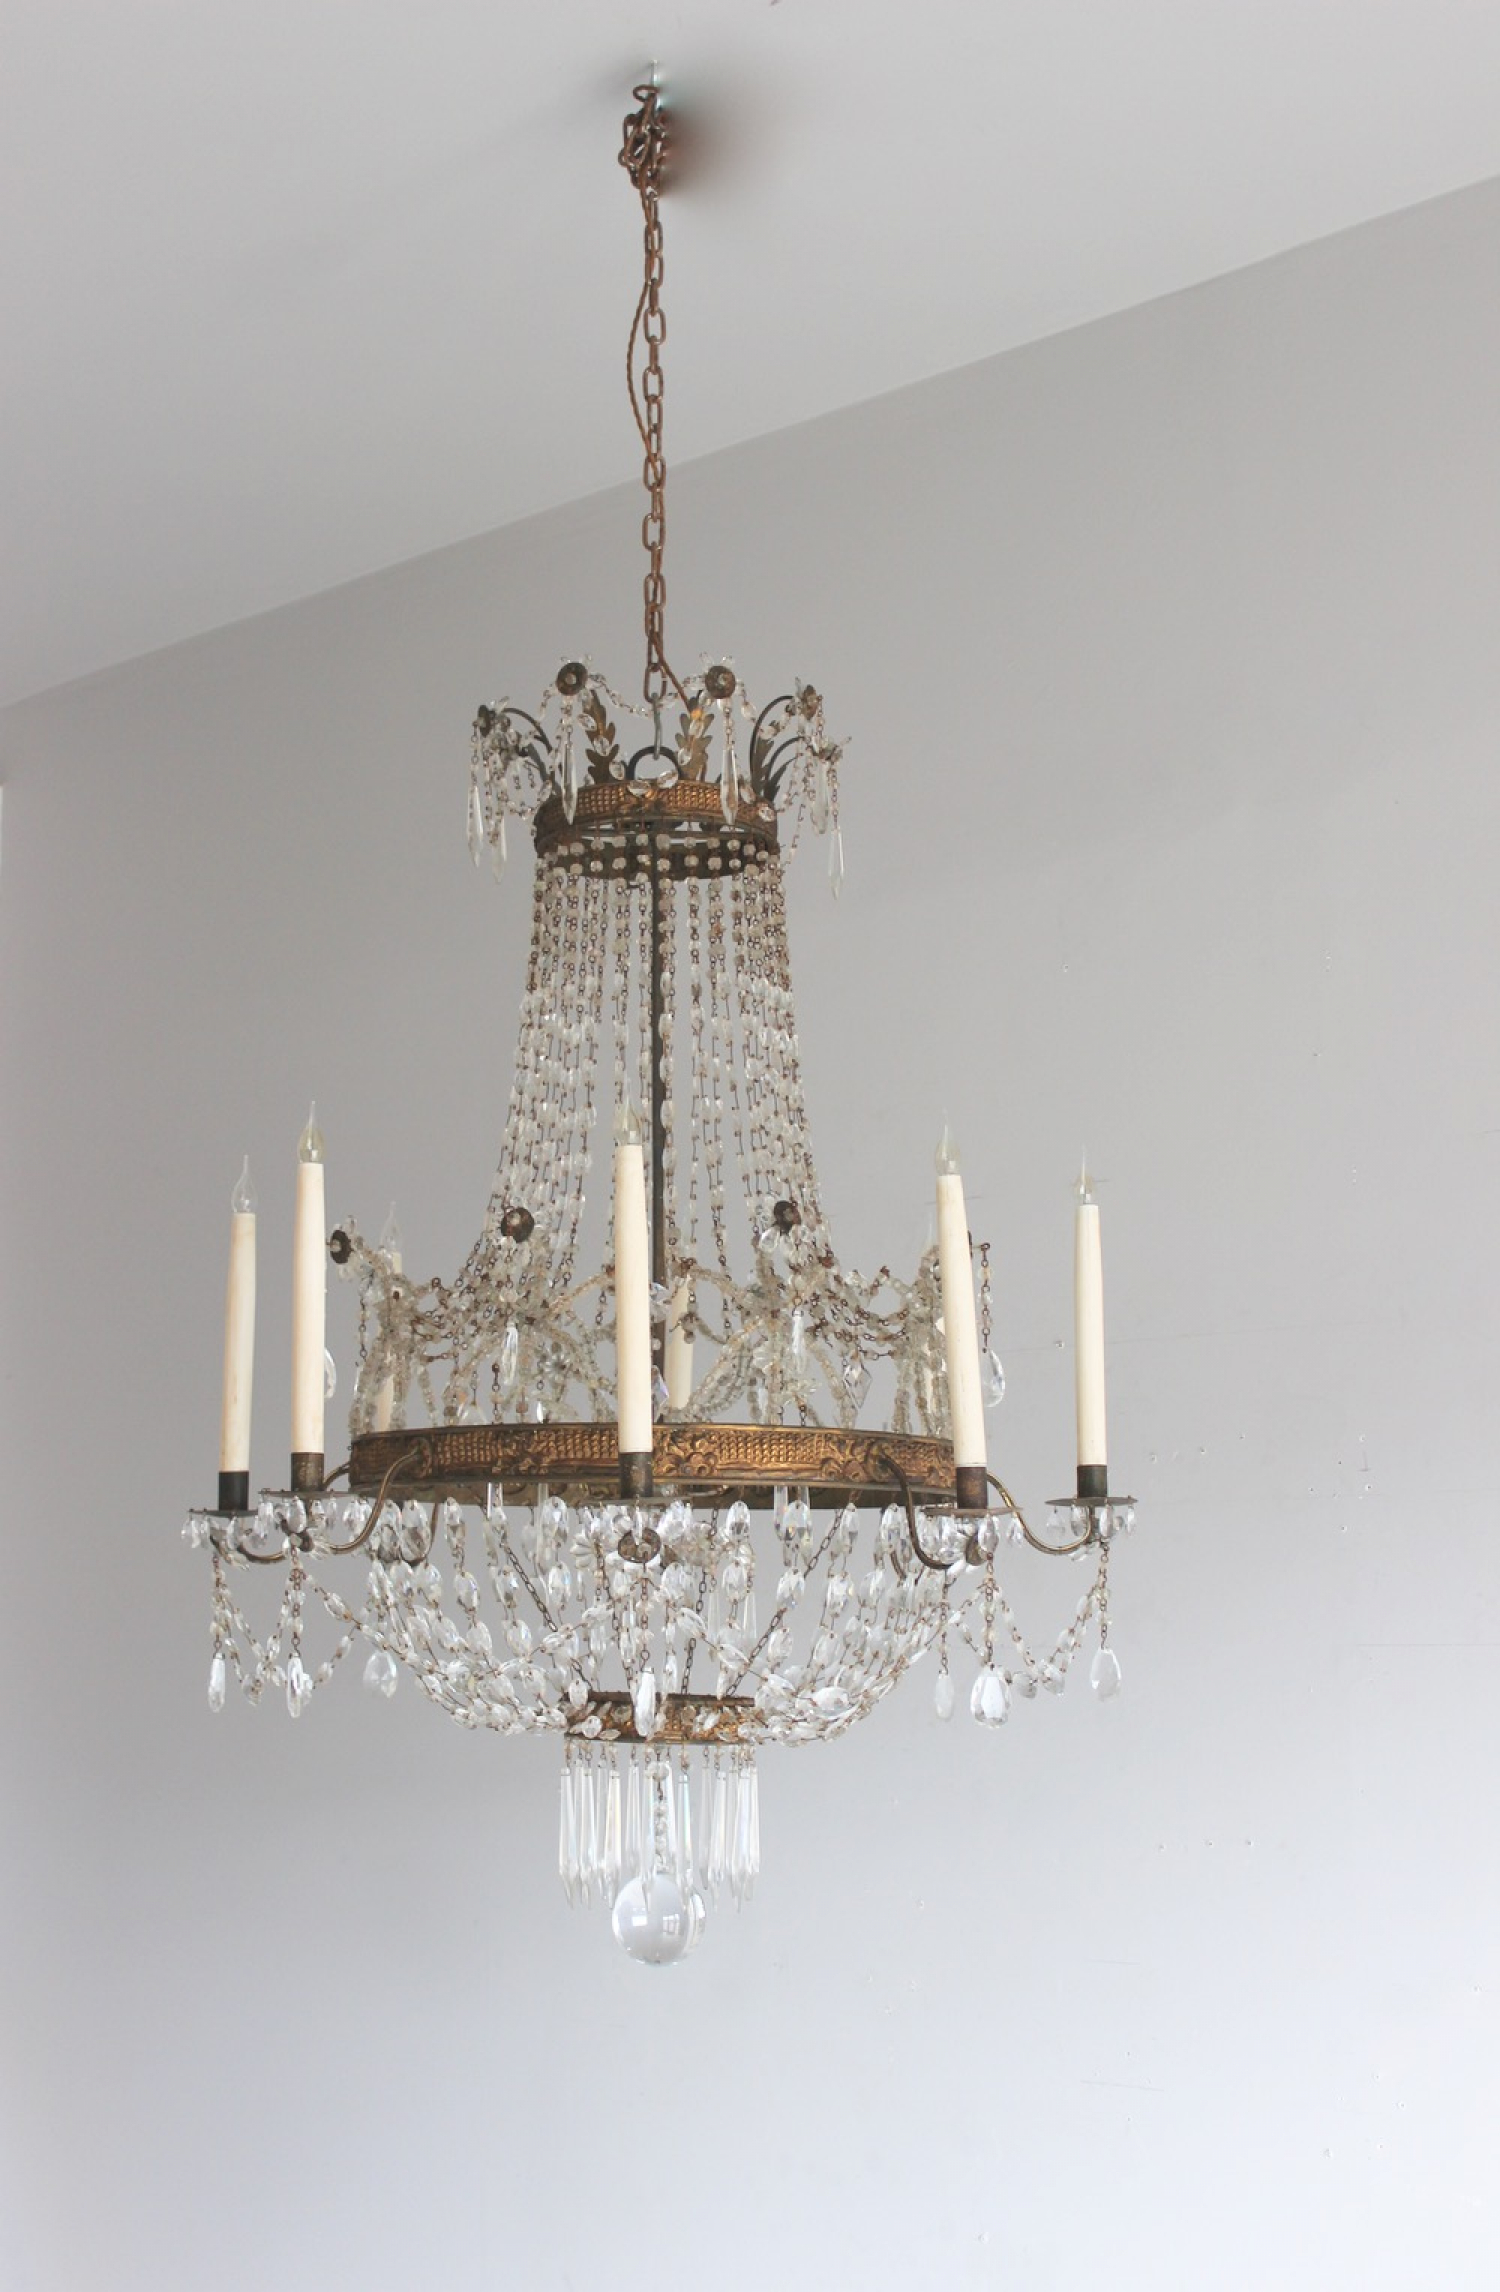 international crystal chandelier decorative chandeliers cut iridescent bead decor products portofino cascade diamond